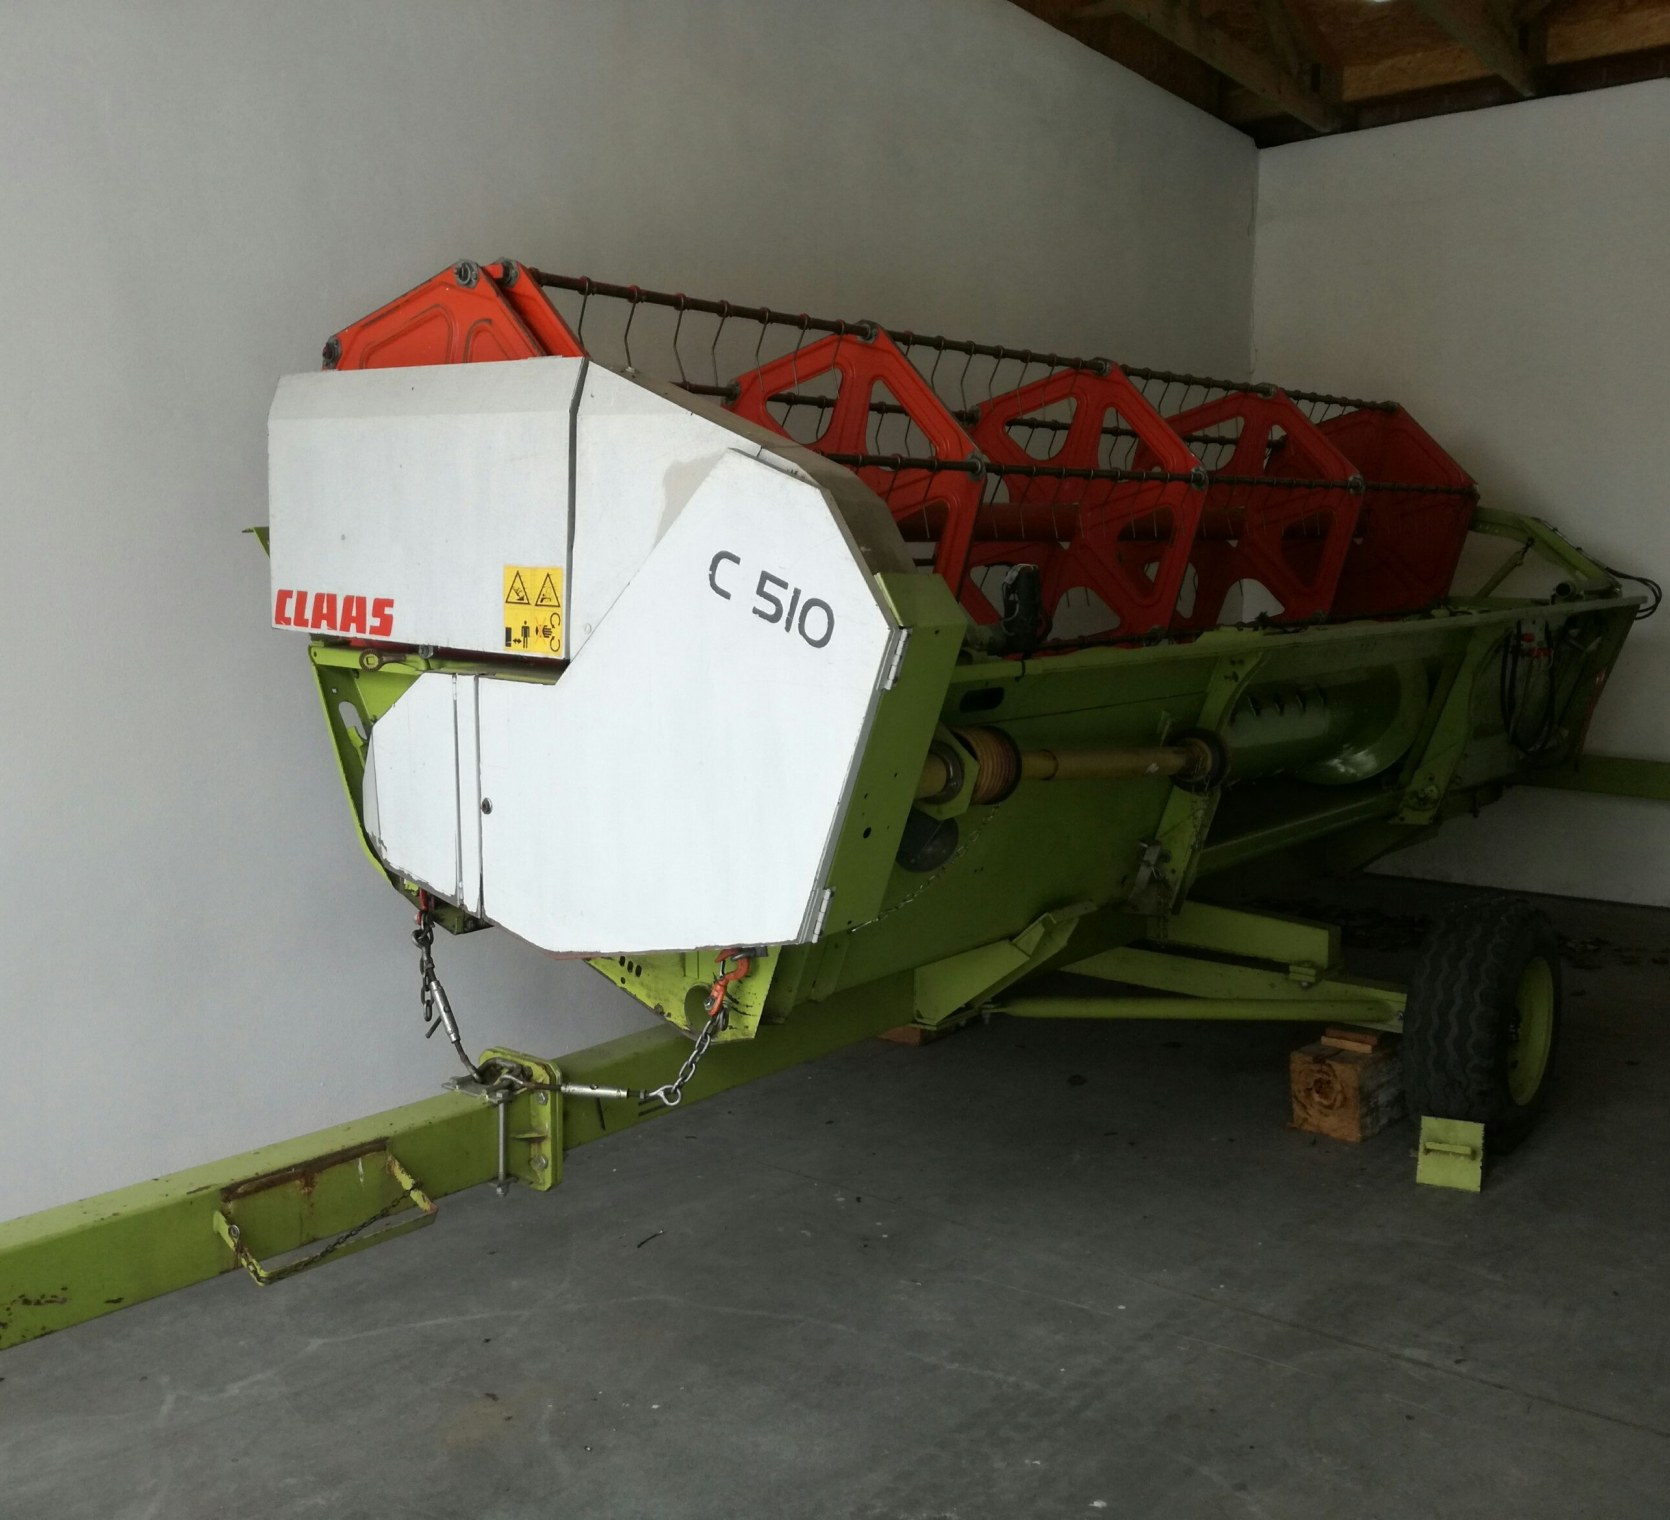 Heder zbożowy Claas C510